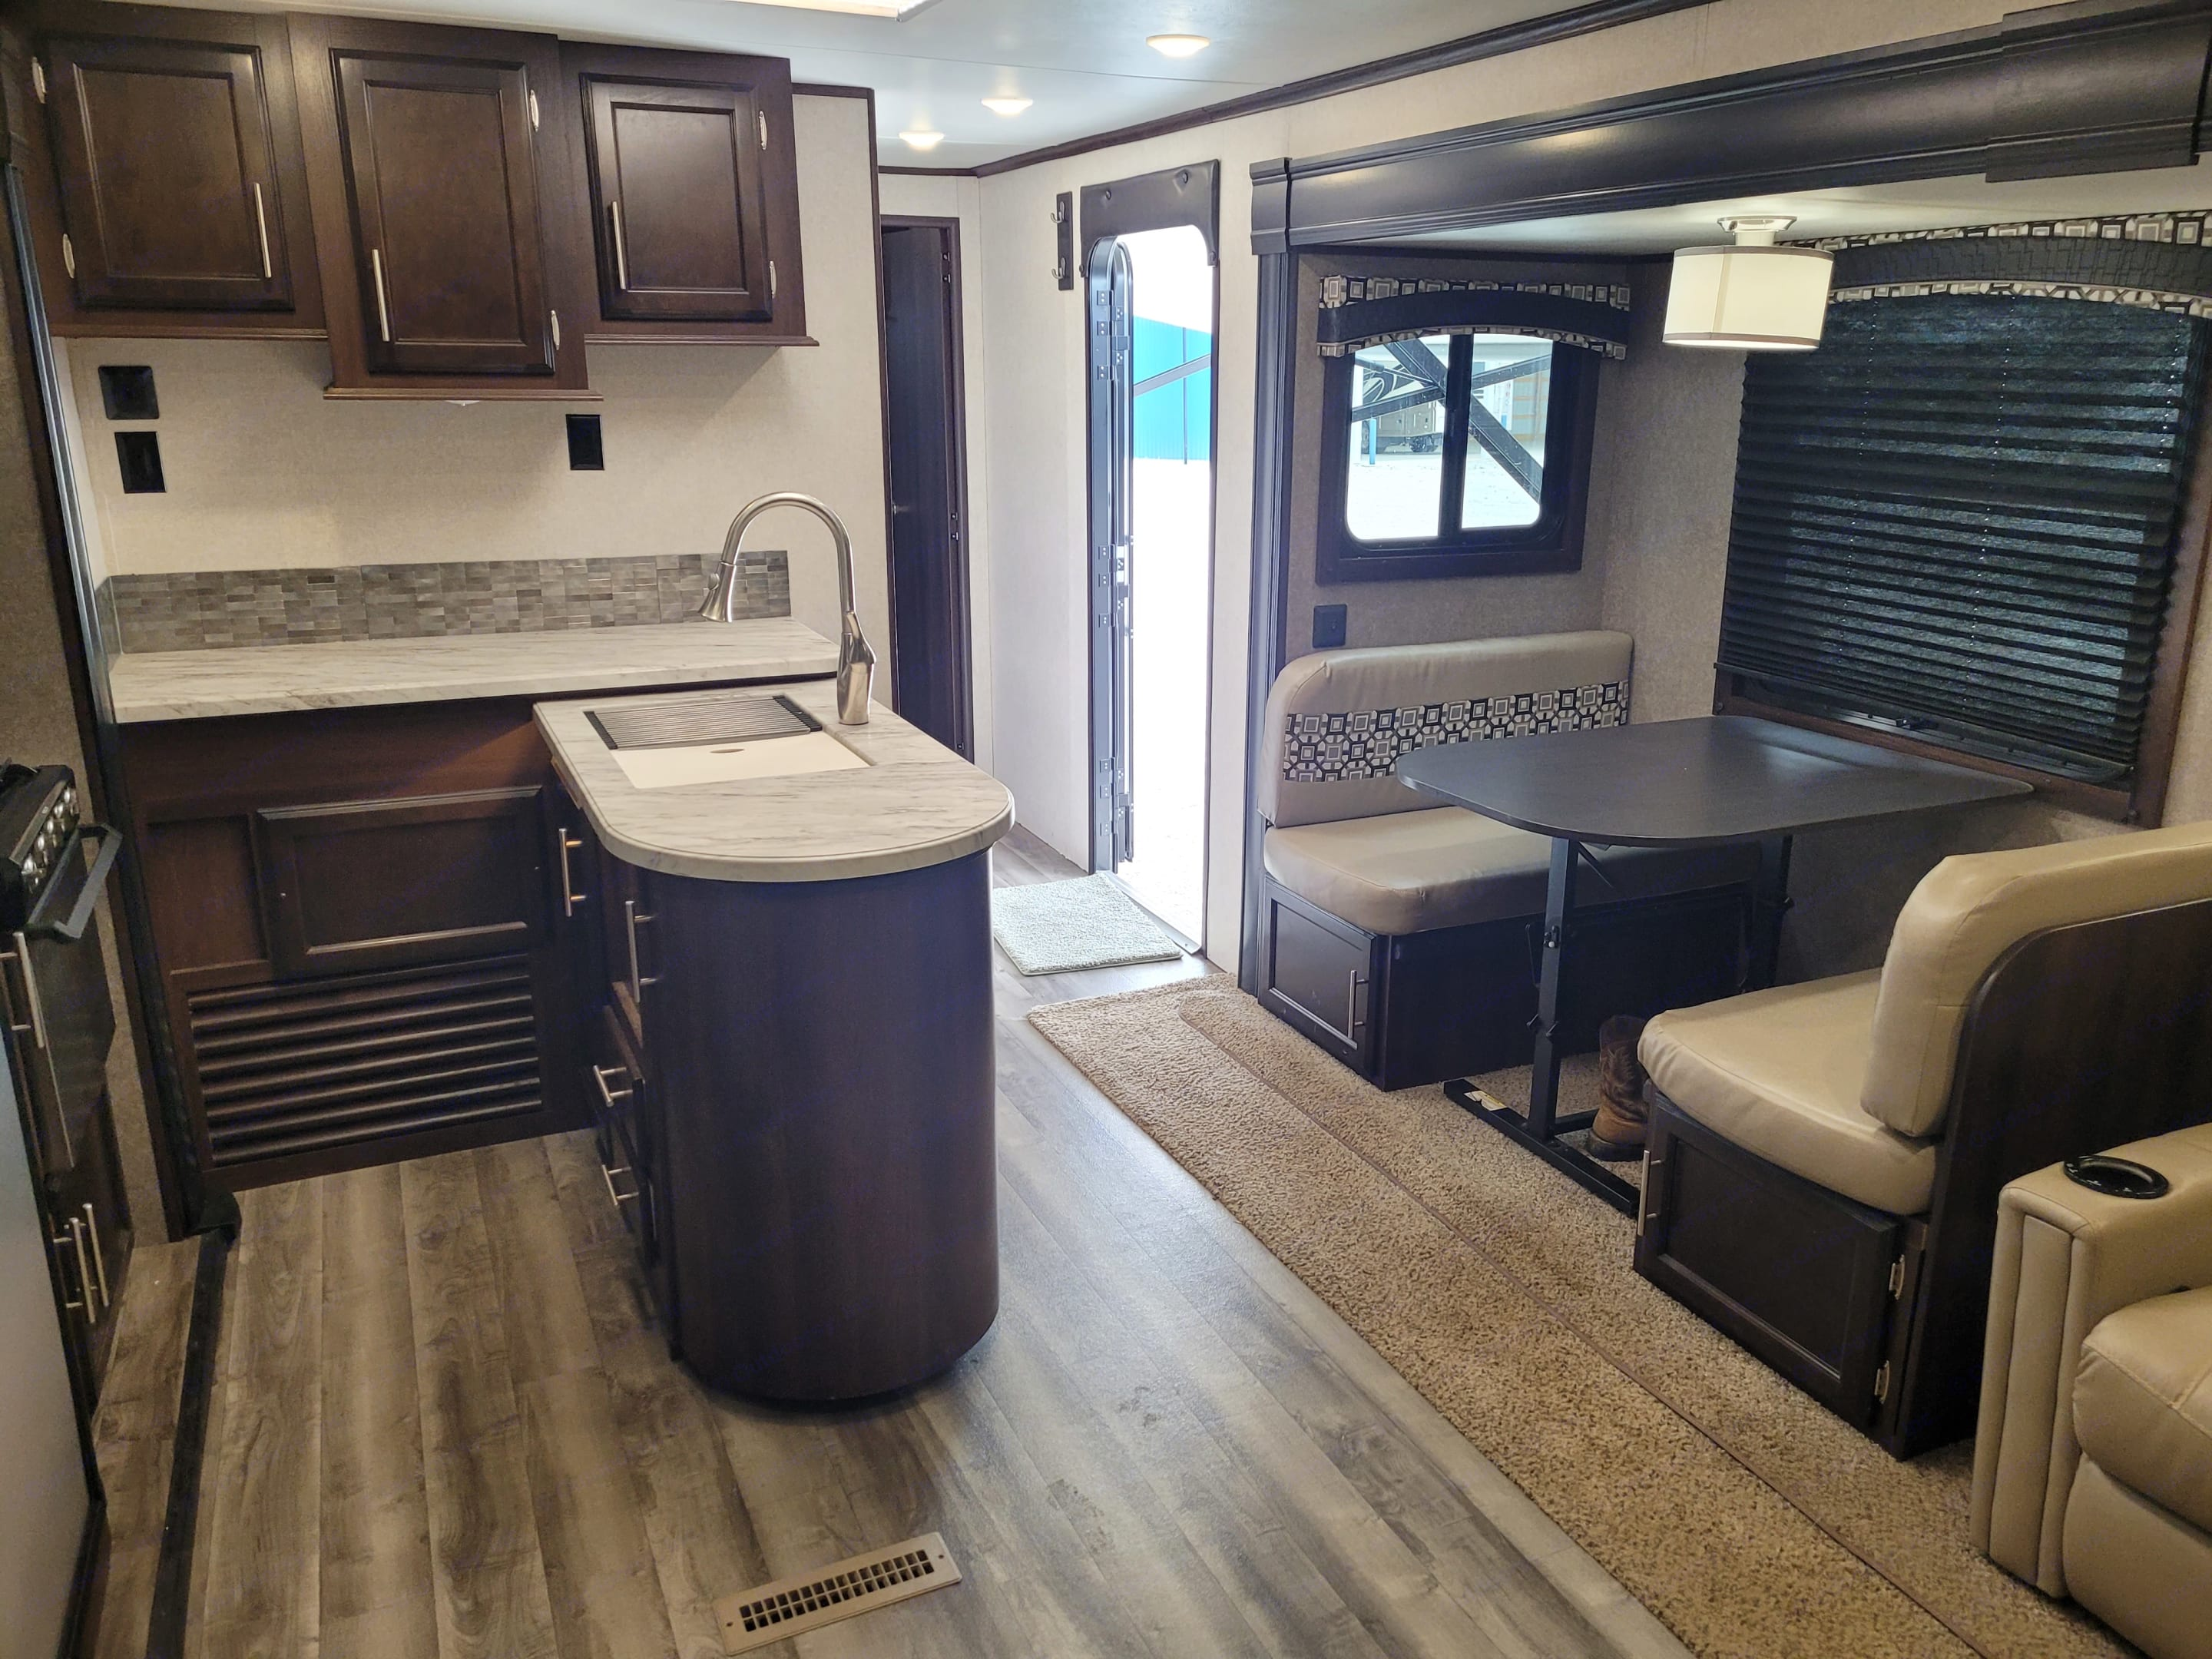 Dinette converts to bed, gas range and oven, microwave, refrigerator. Jayco Jay Flight 2019